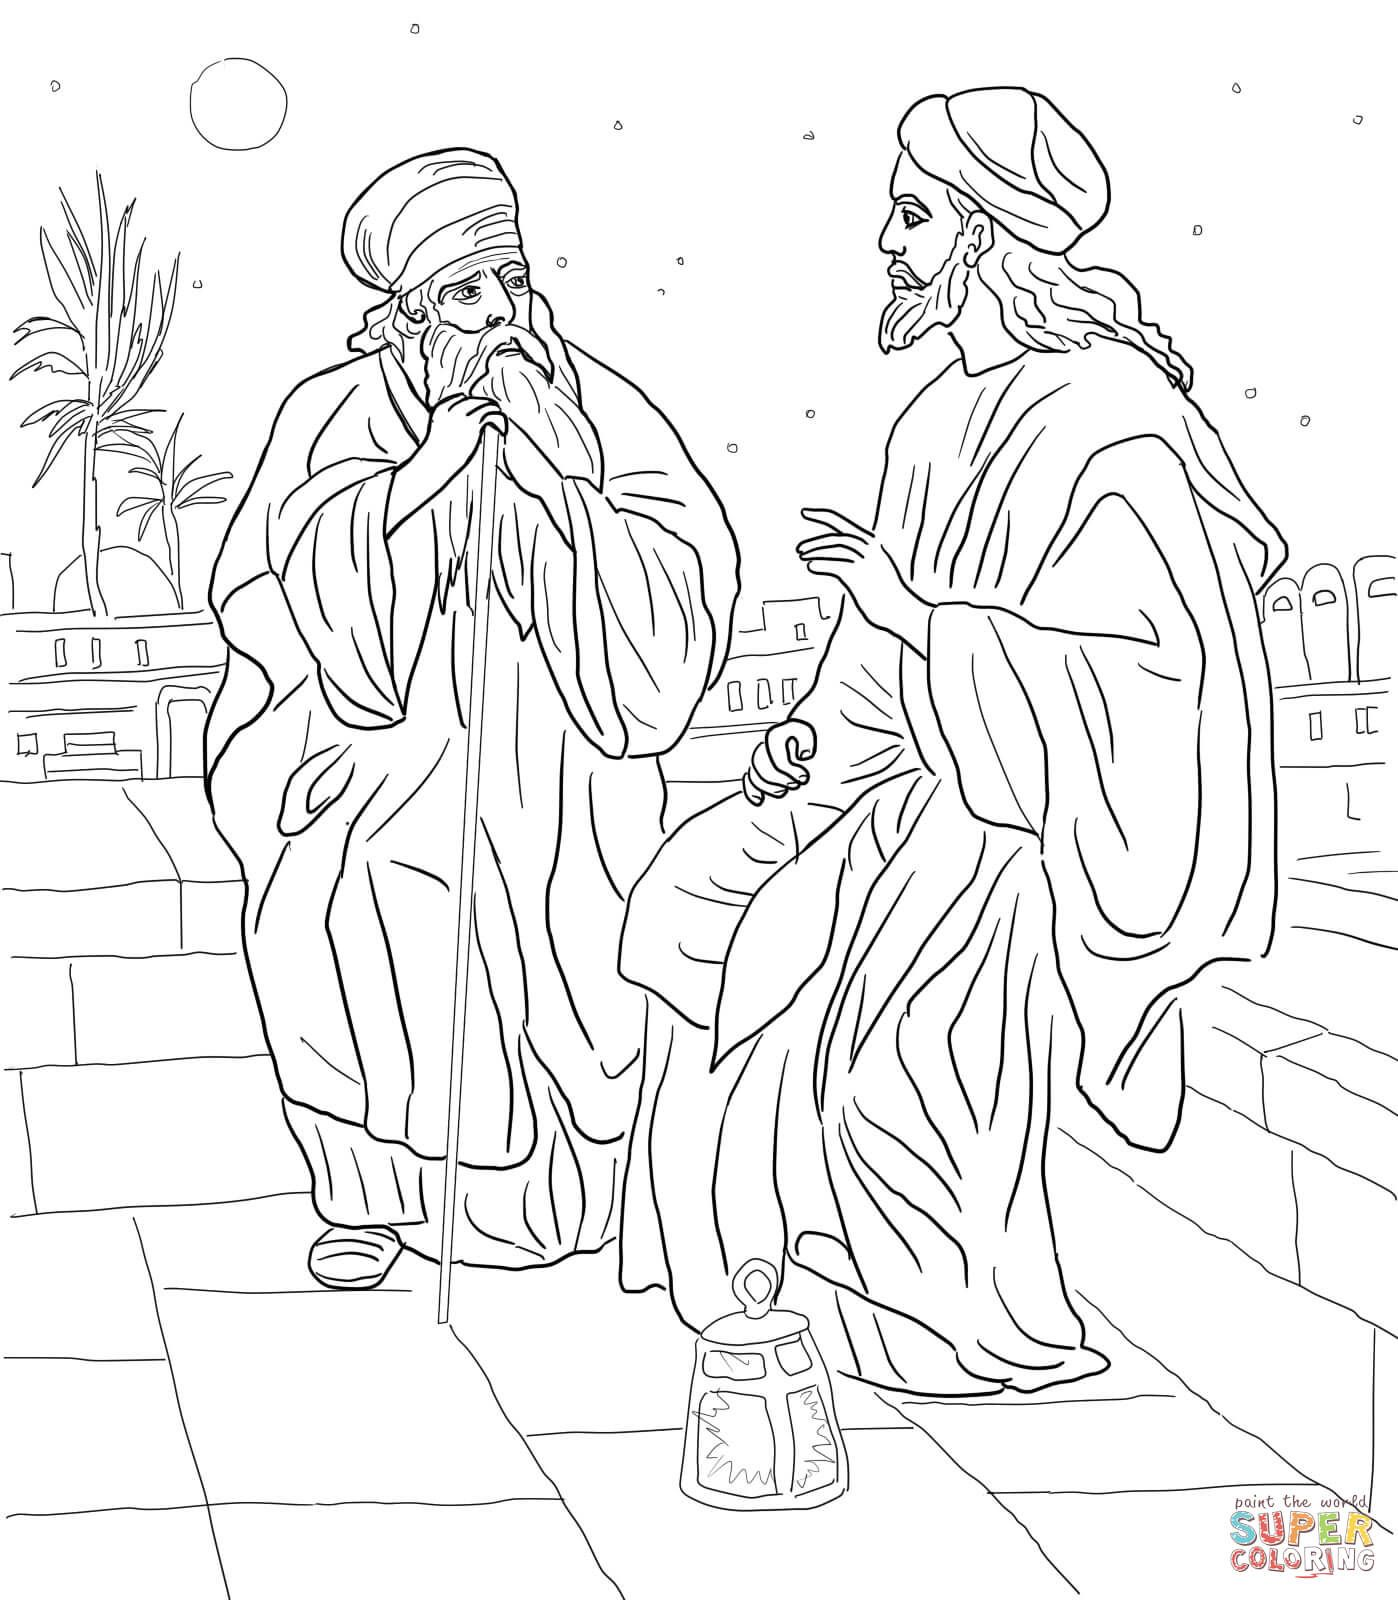 Pin By Linda Deavours On Sunday School Coloring Pages By Topic Jesus Coloring Pages Bible Coloring Pages Coloring Pages